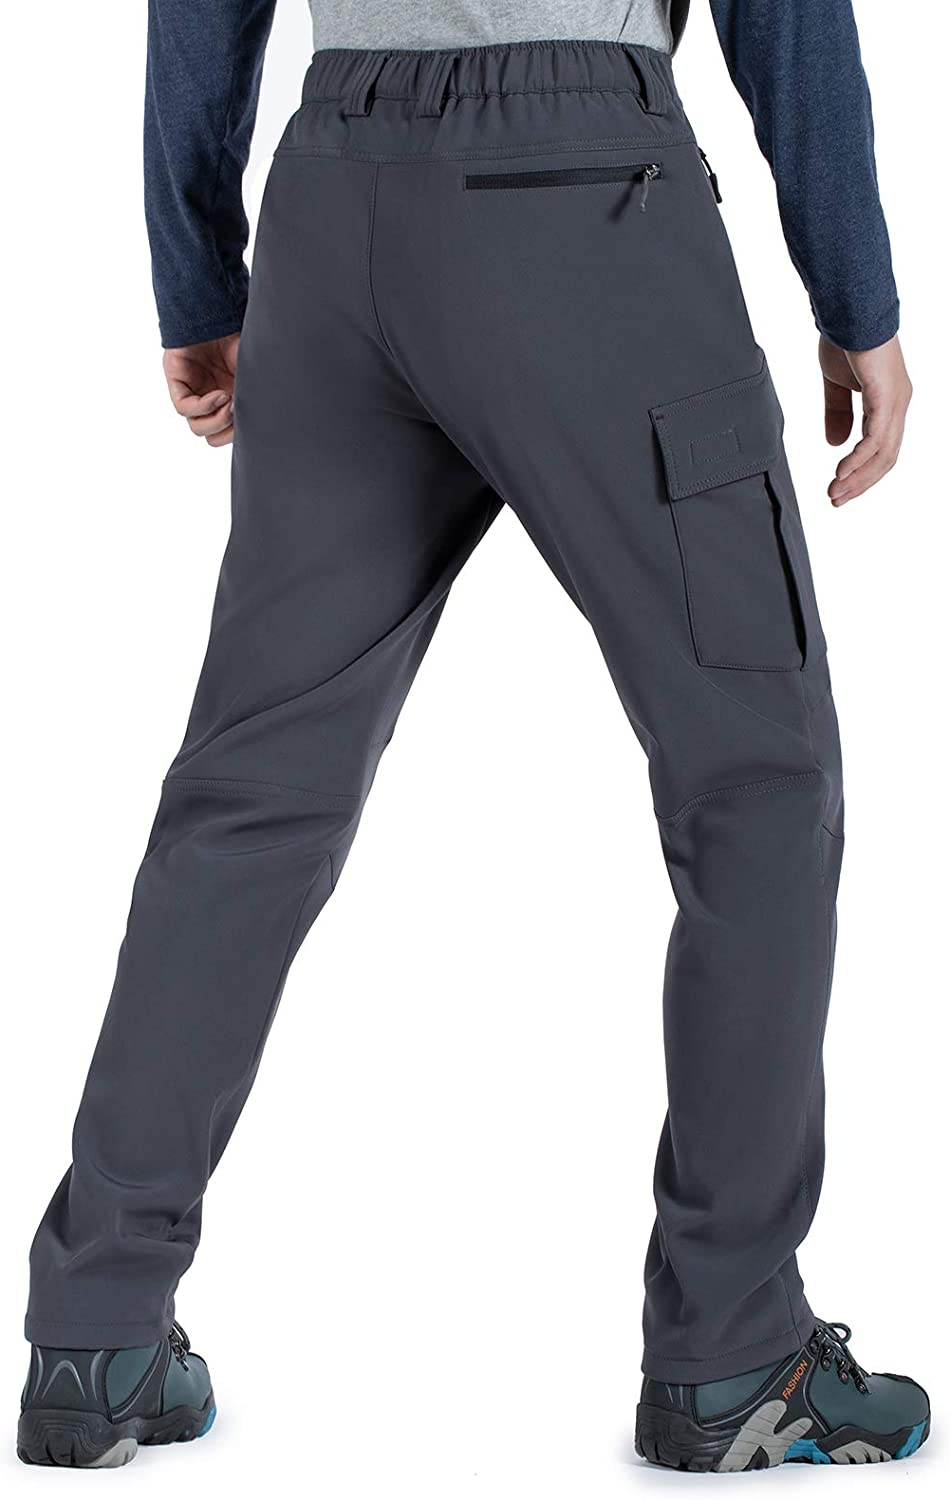 Hiauspor Mens-Fleece-Lined-Hiking-Pants Water Resistant Outdoor Softshell Pant Warm for Winter,Snow Ski/…